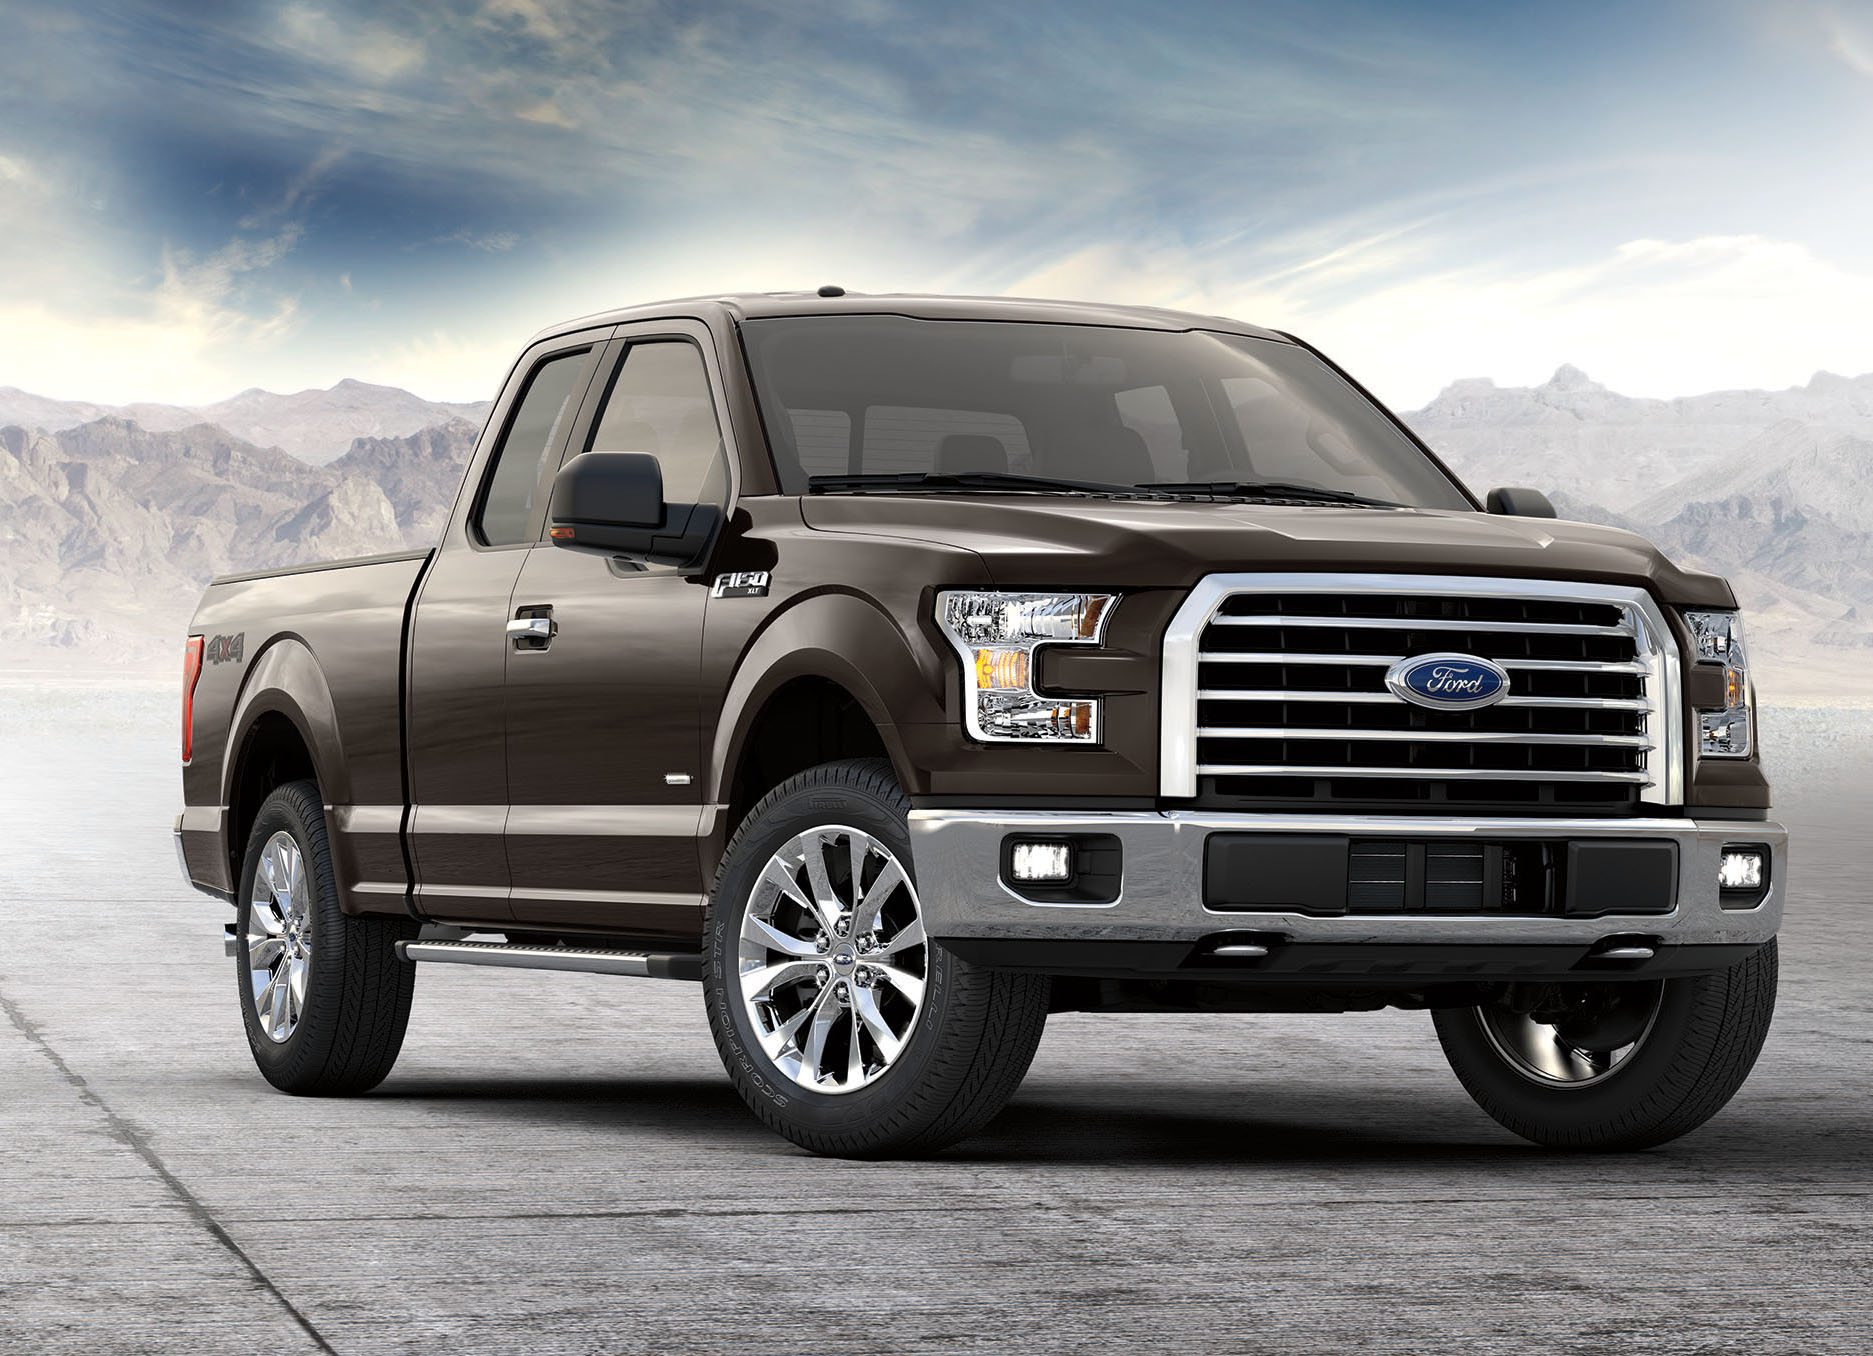 2017 Ford F-150 gets more powerful V6, 10-speed auto